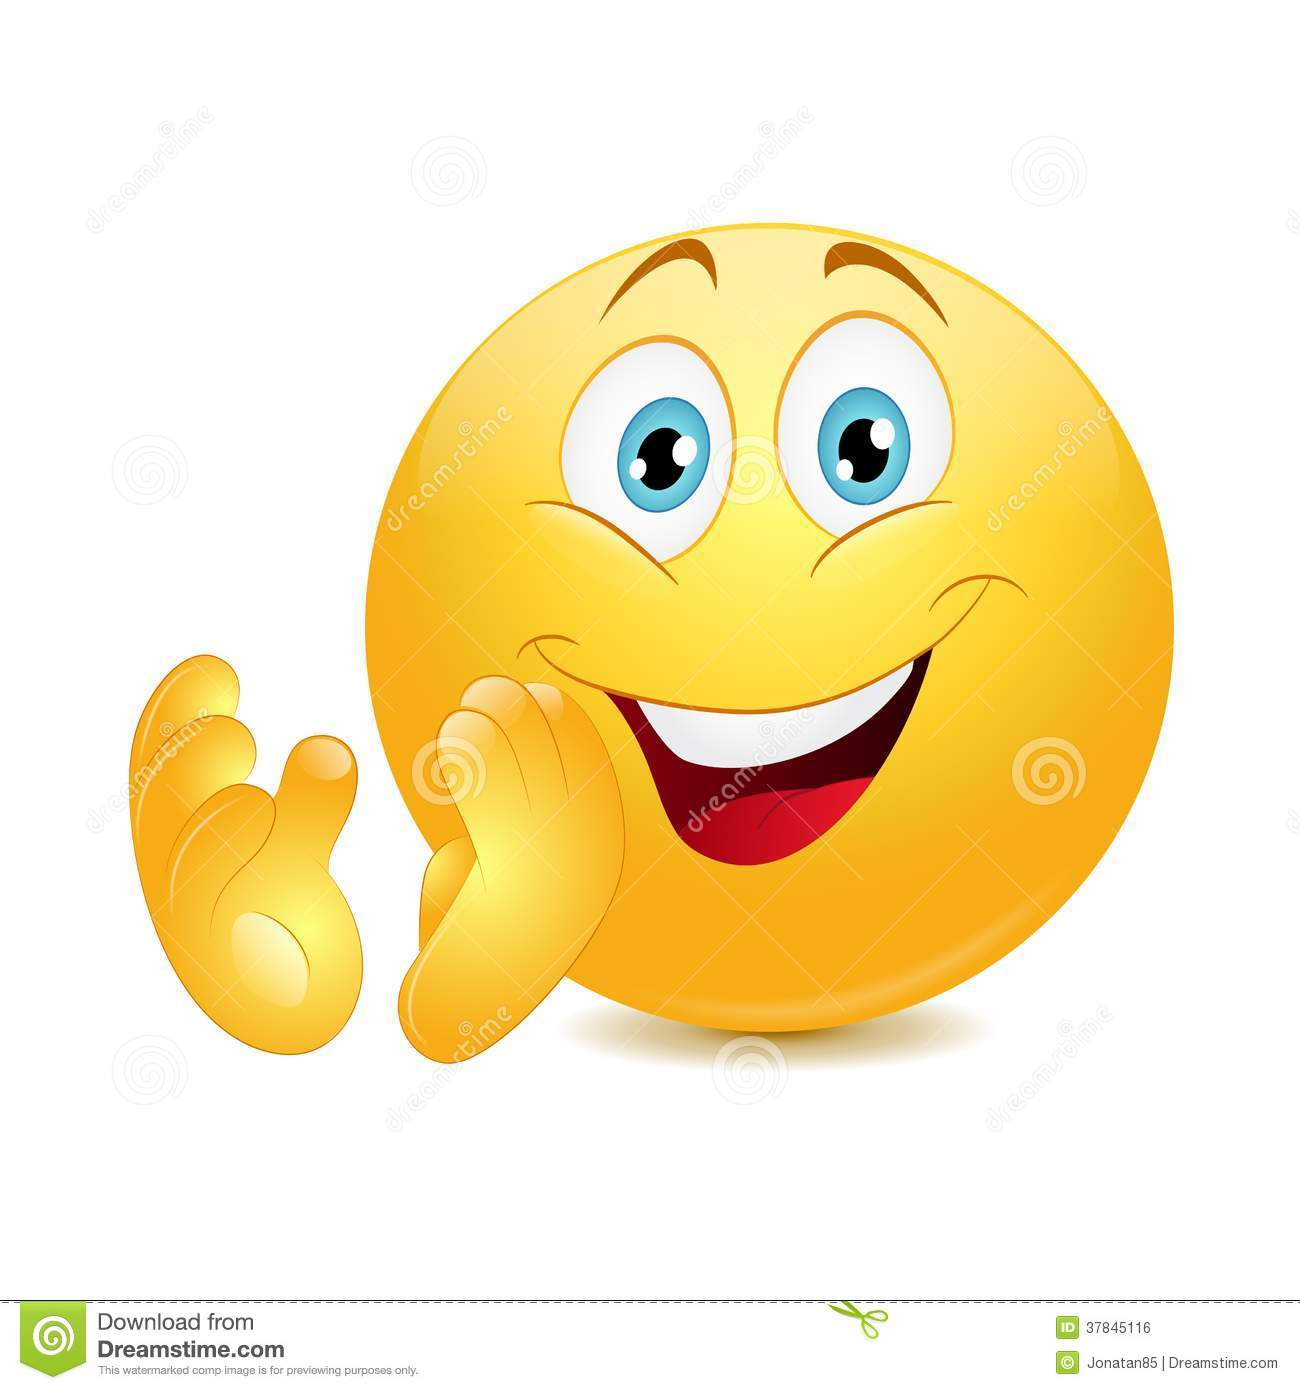 Emoticon Showing Thumb Up Royalty Free Stock Image - Image ...